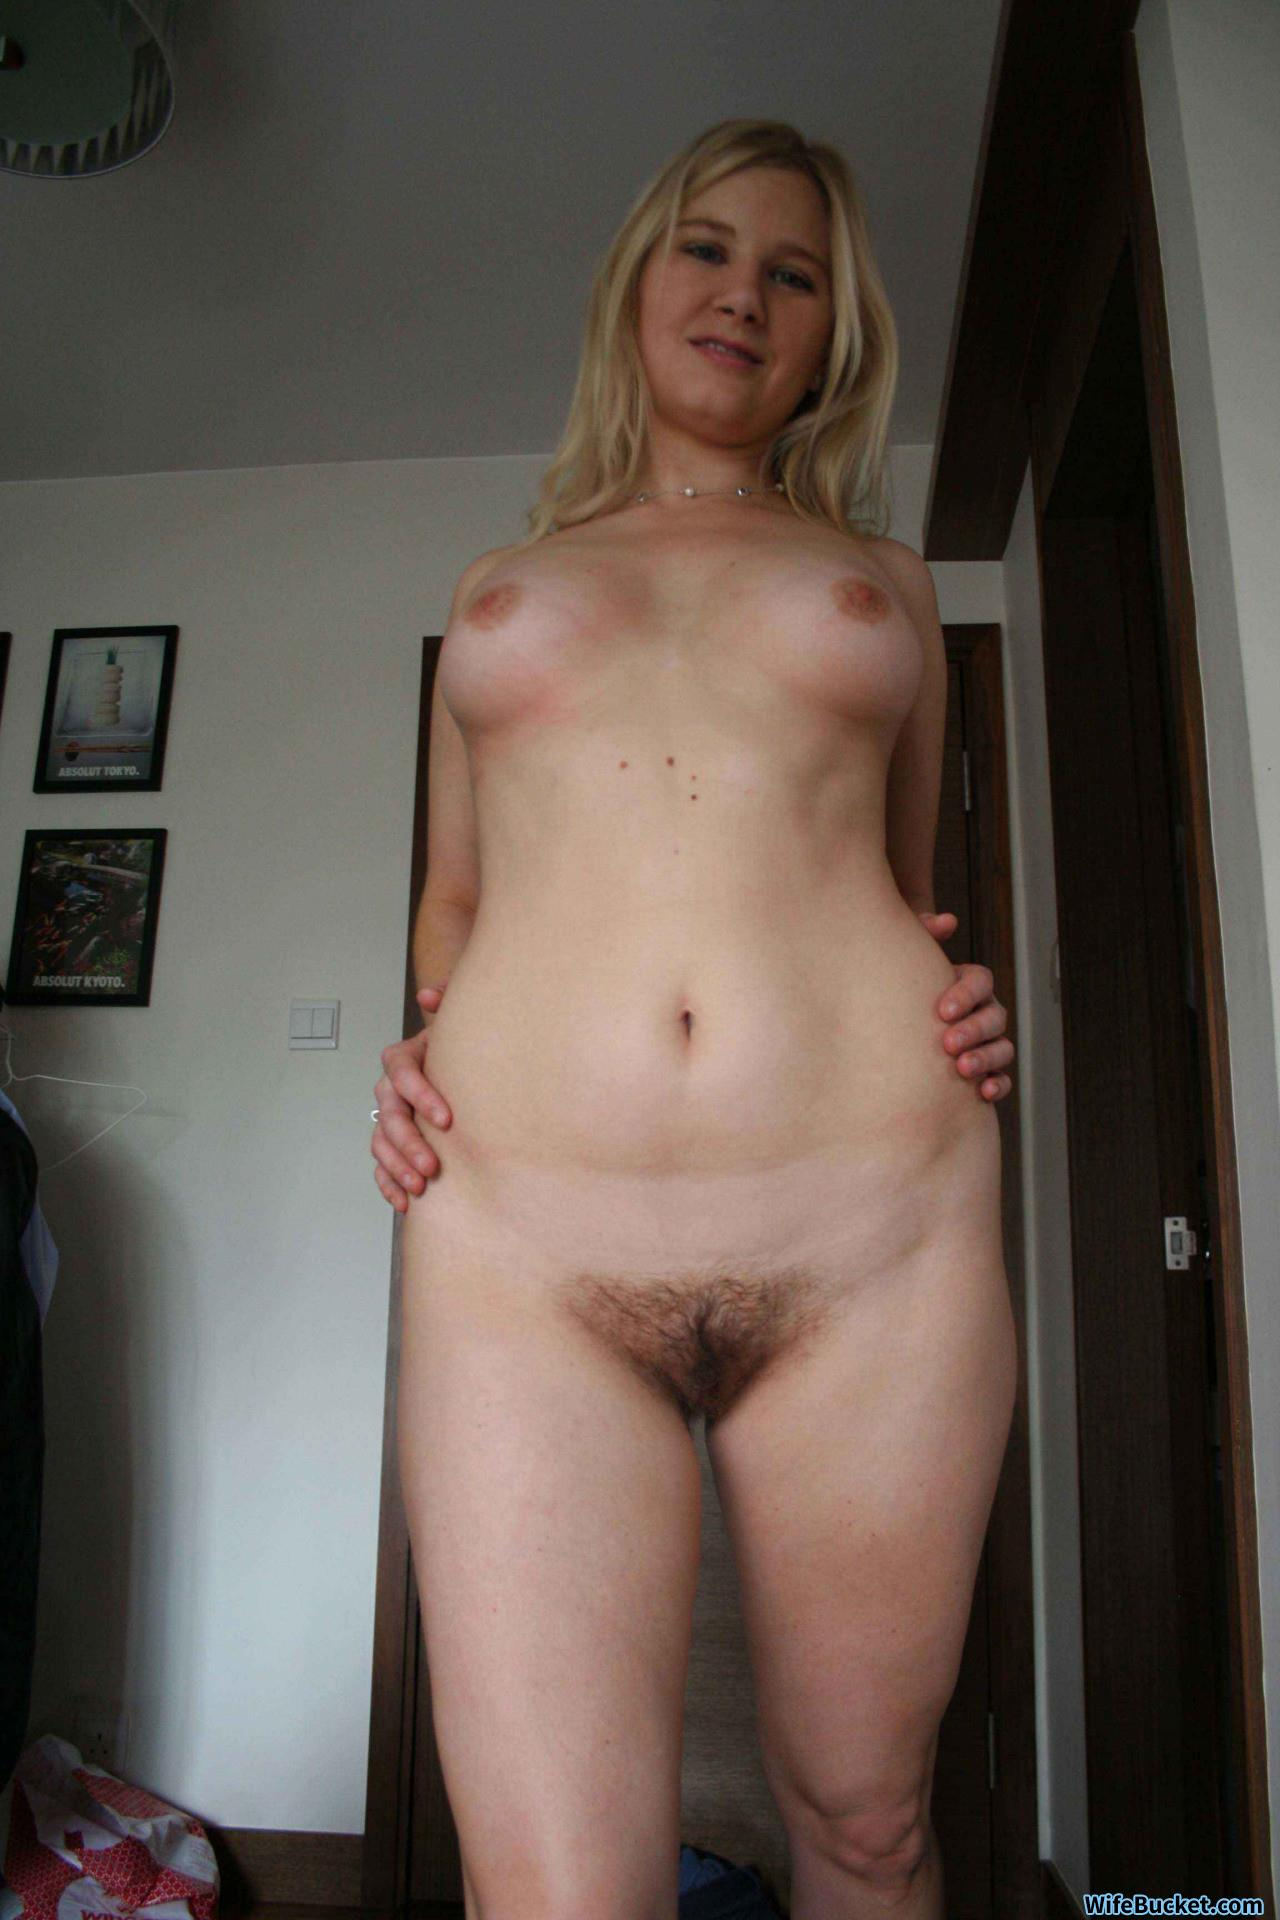 nude amateur wives pics